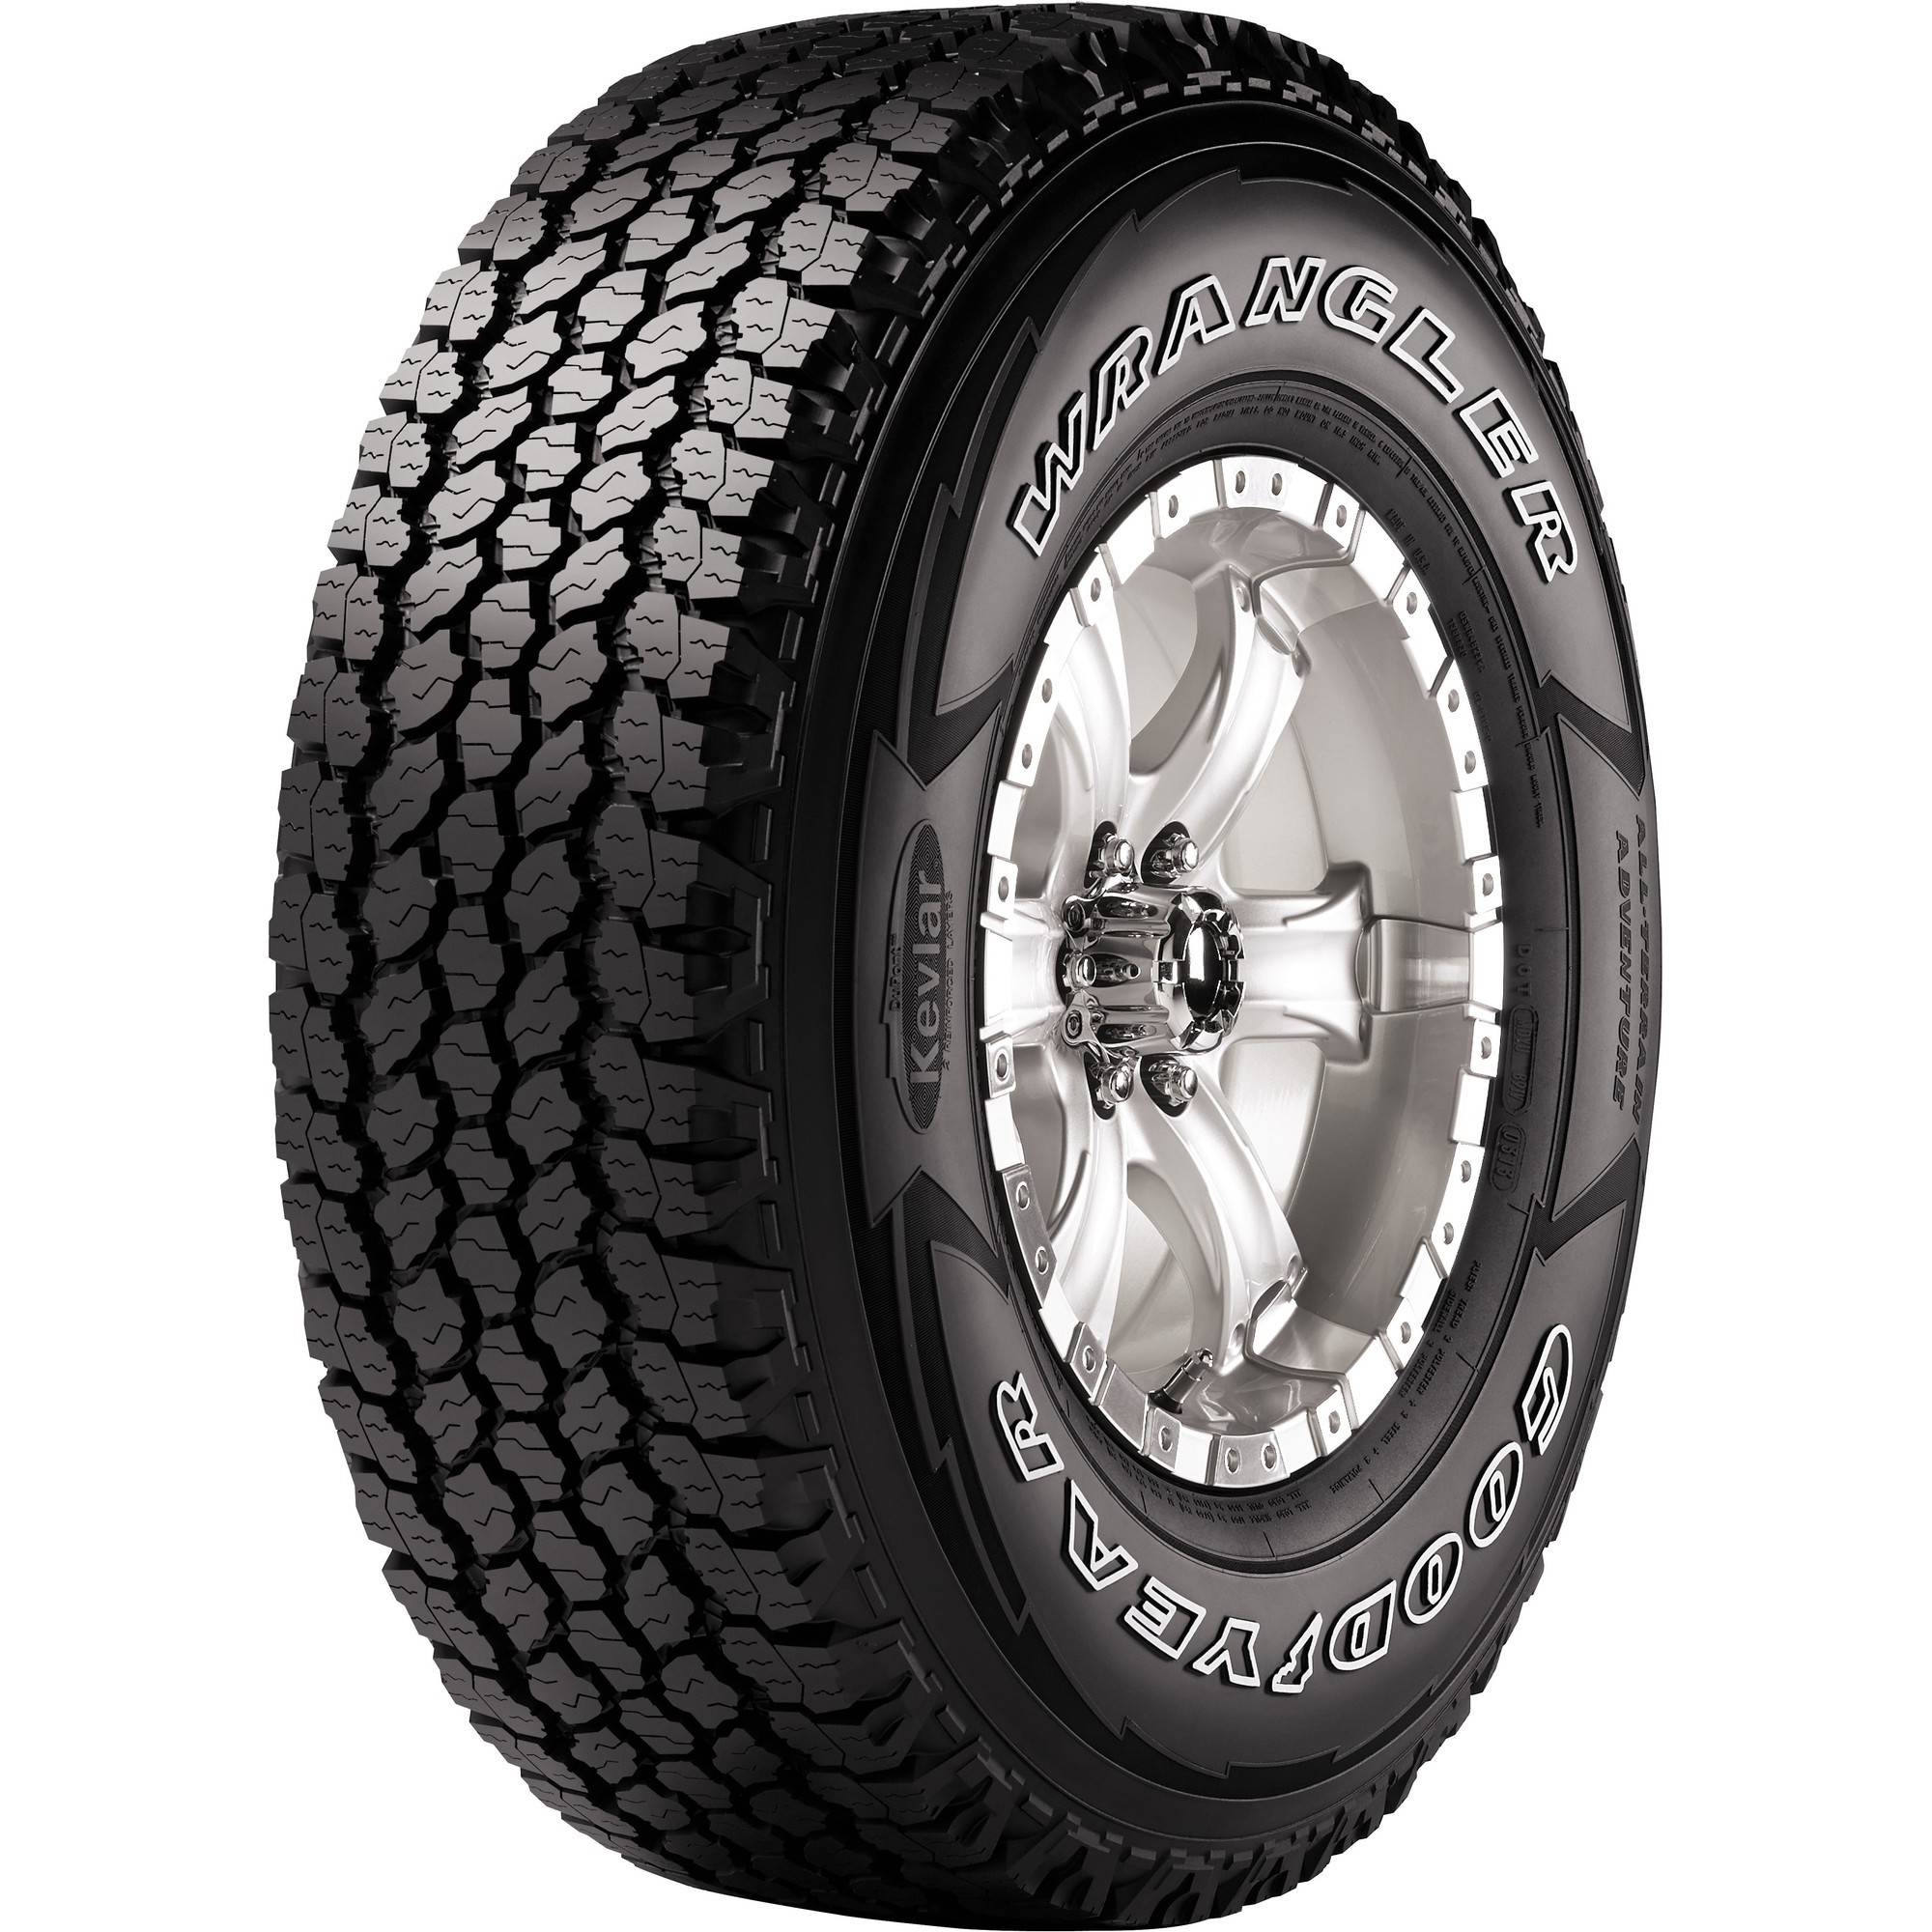 Goodyear Wrangler All-Terrain Adventure LT265/70R18/10 Tire 124S